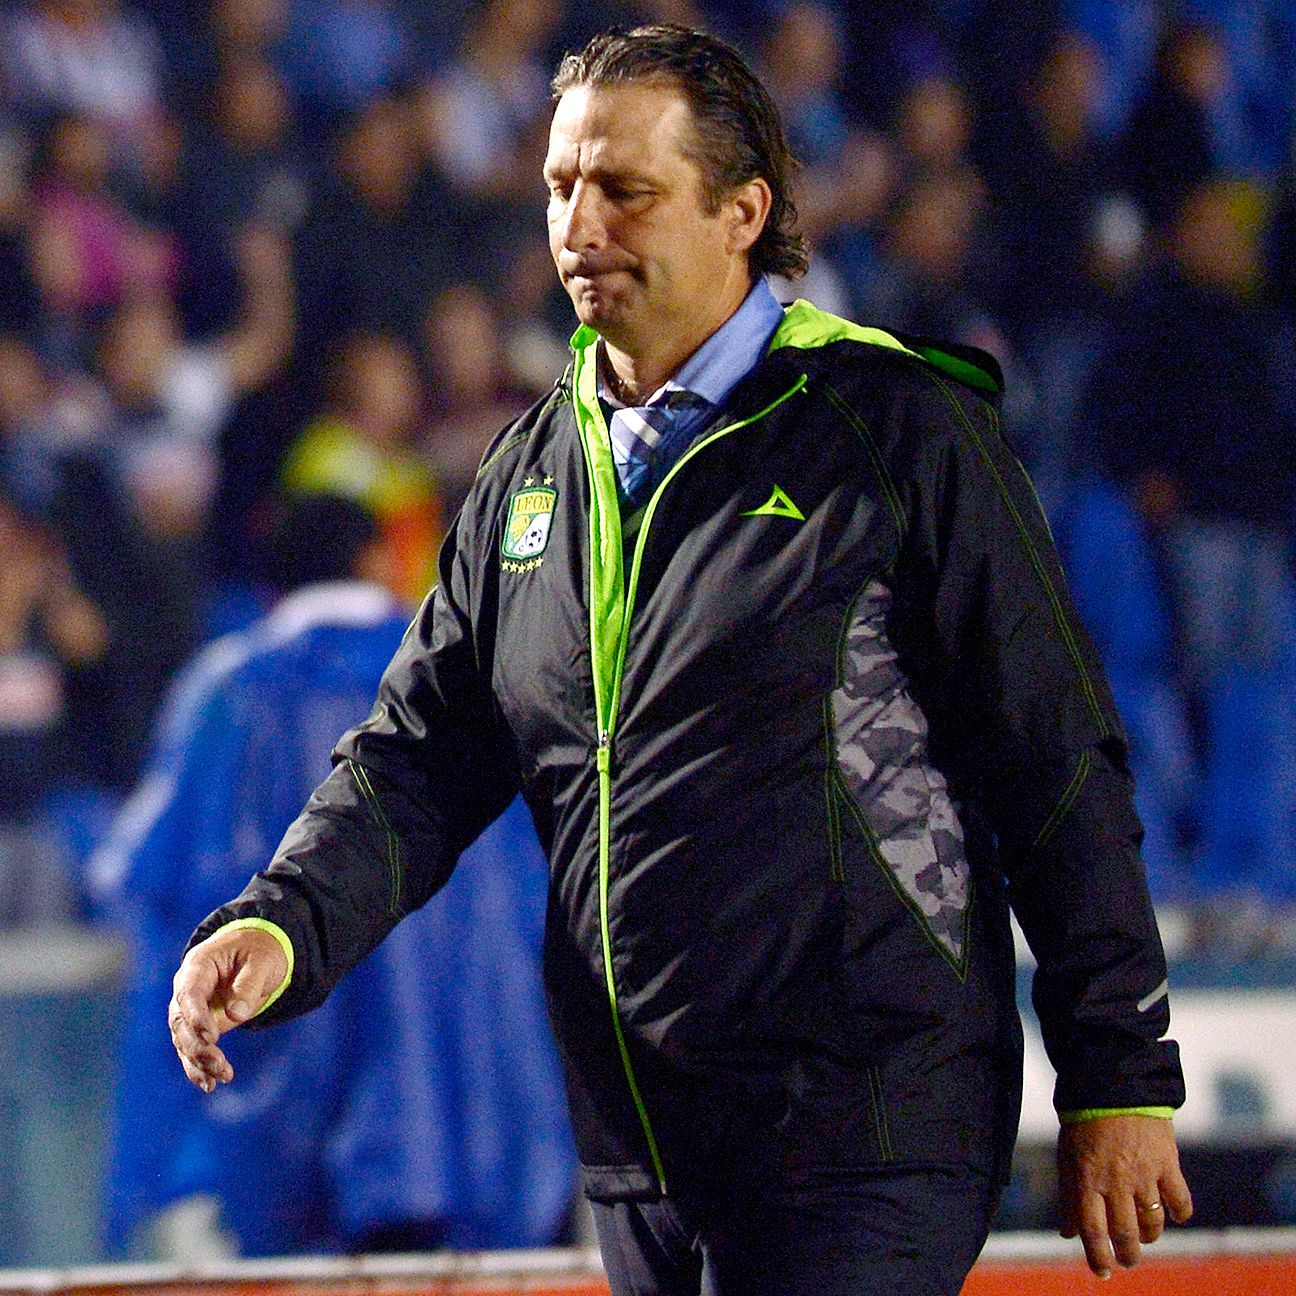 2013 Apertura and 2014 Clausura champions Leon have fallen on hard times under Juan Antonio Pizzi.